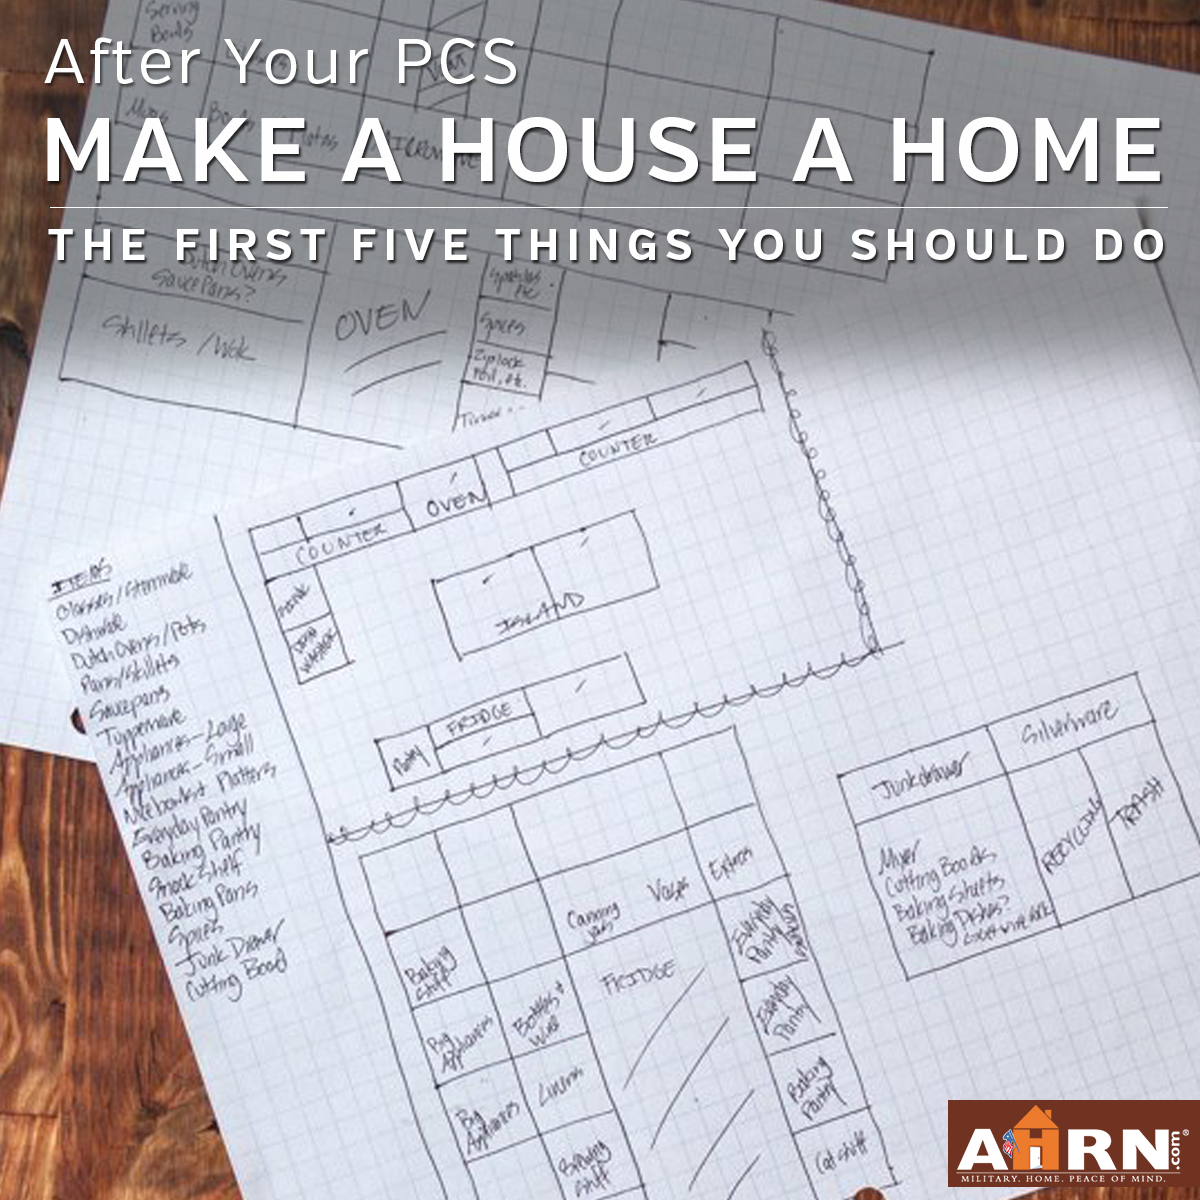 The first five things you should do to make your house a home after you PCS